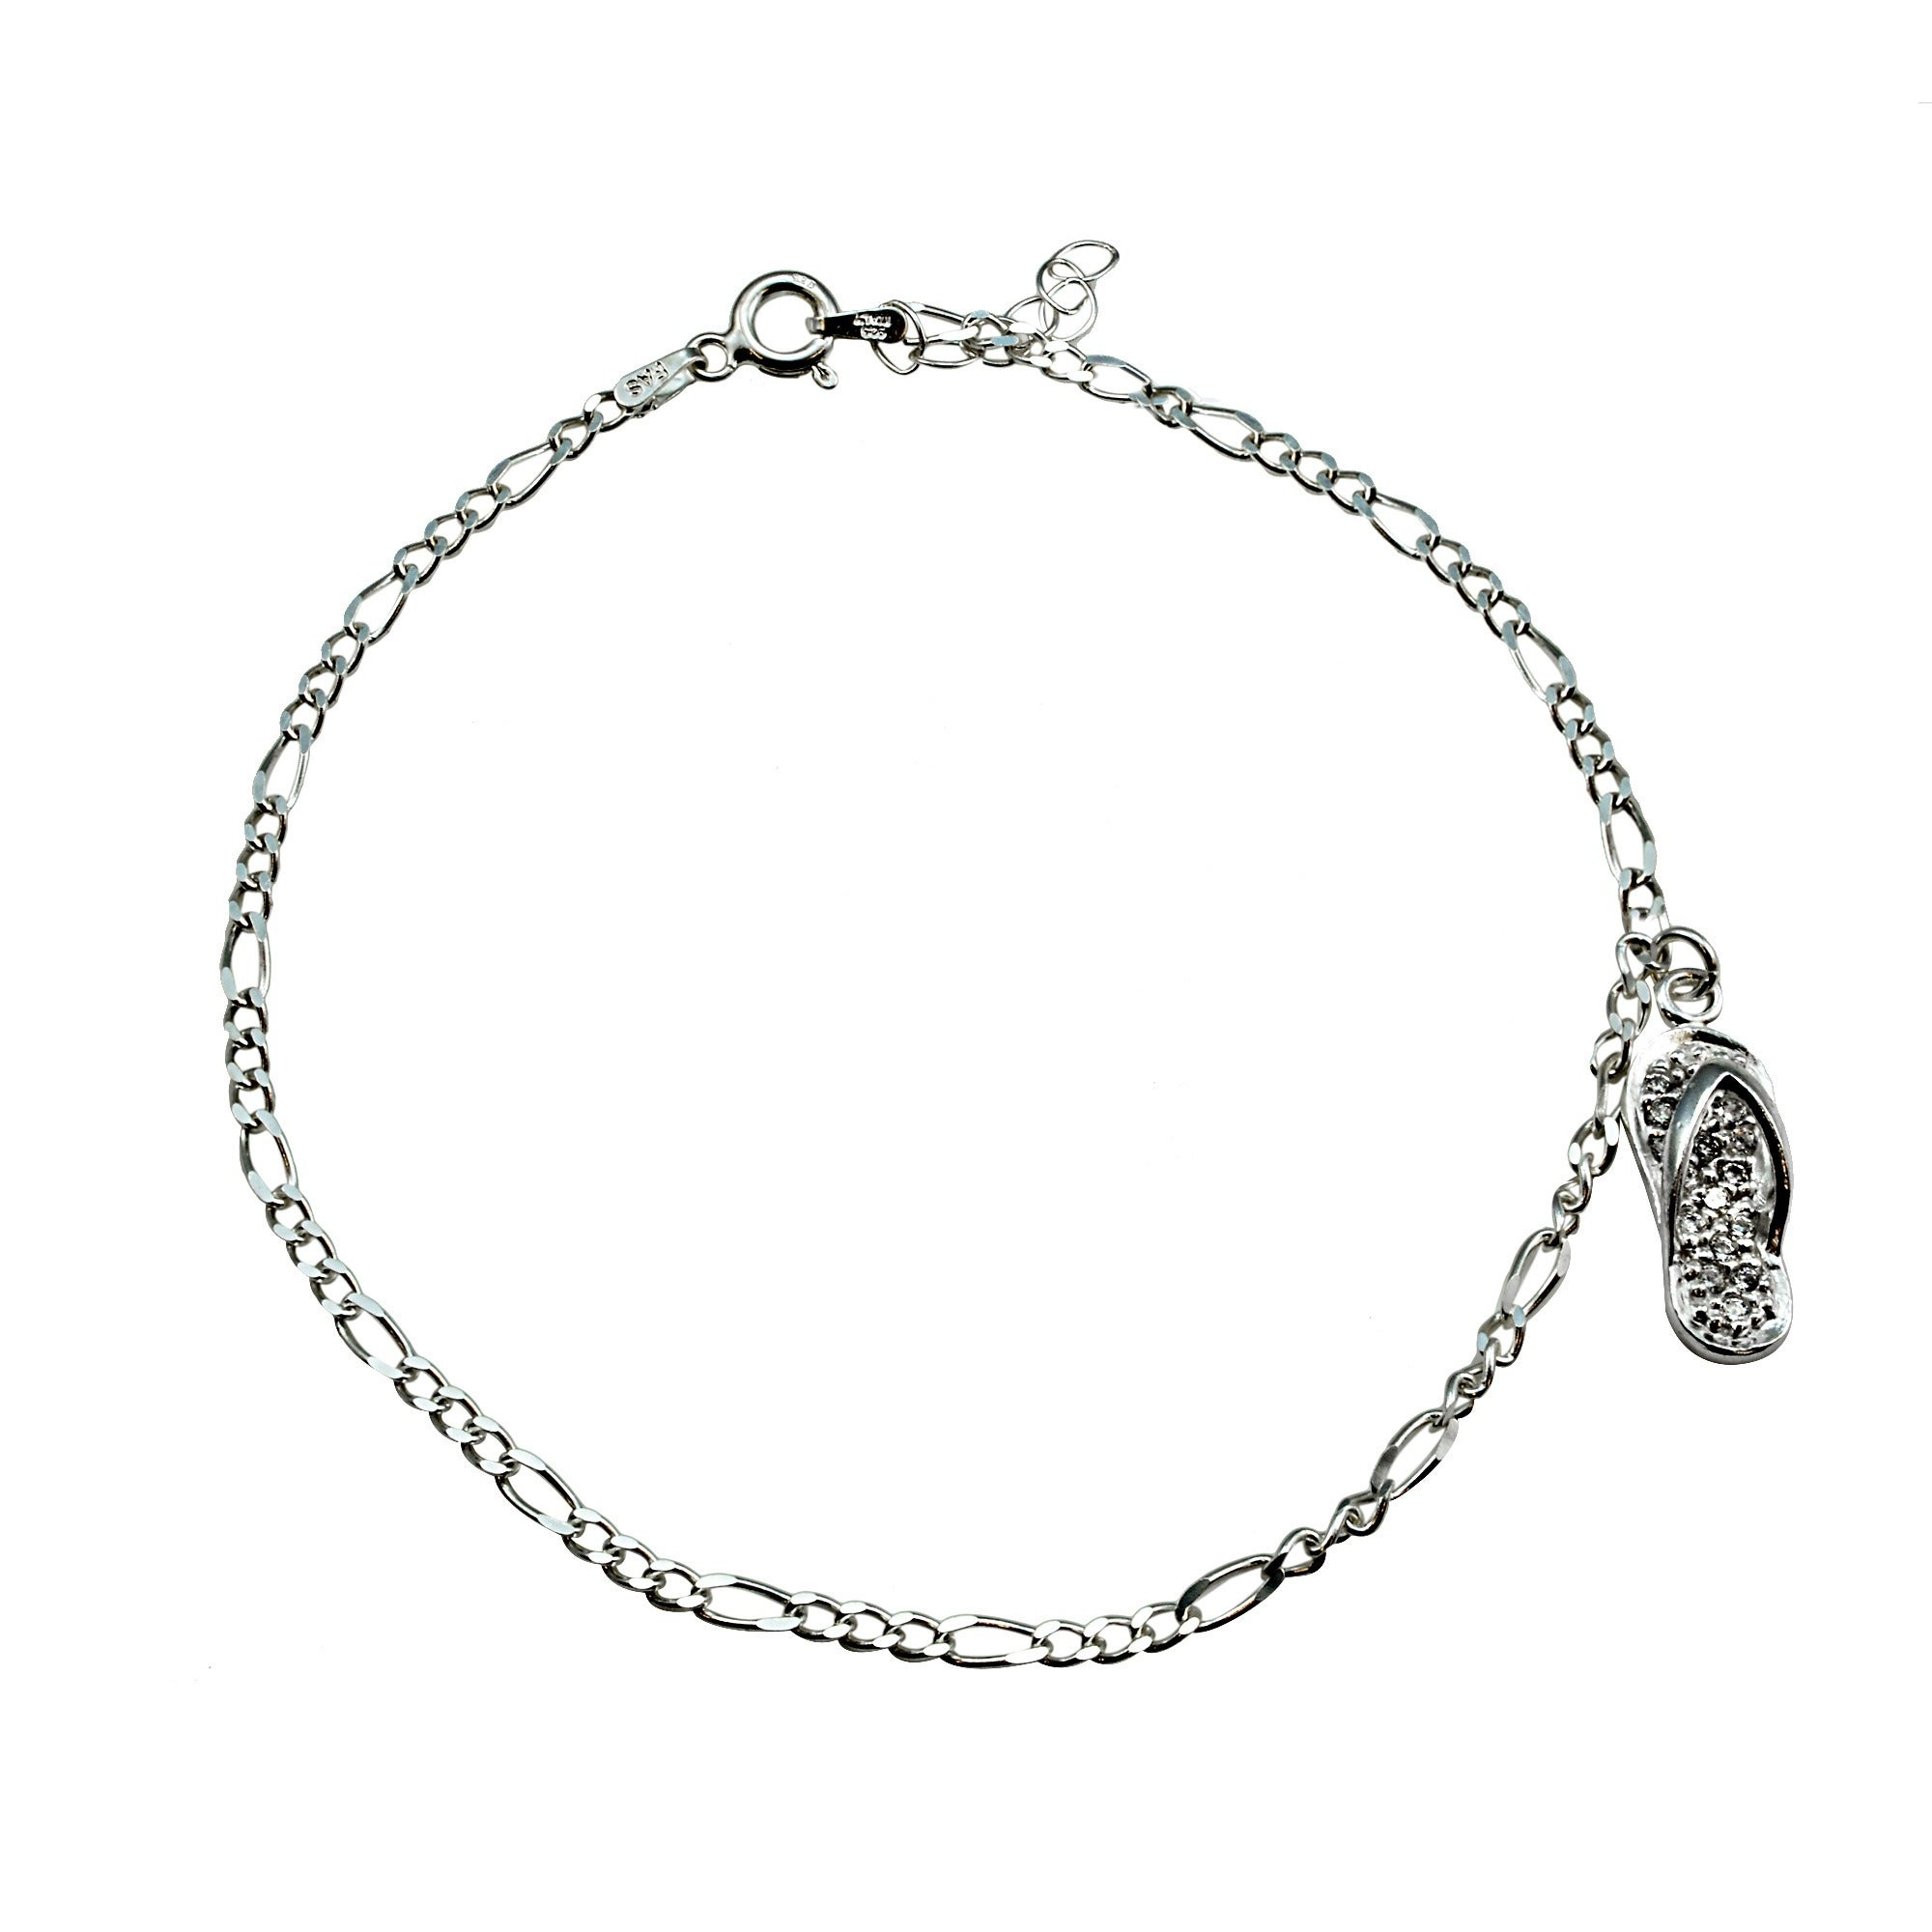 the link silver this want anklet affiliate a receive gold is cubic additional i info image pin zirconia and an amazon on sterling rose click over